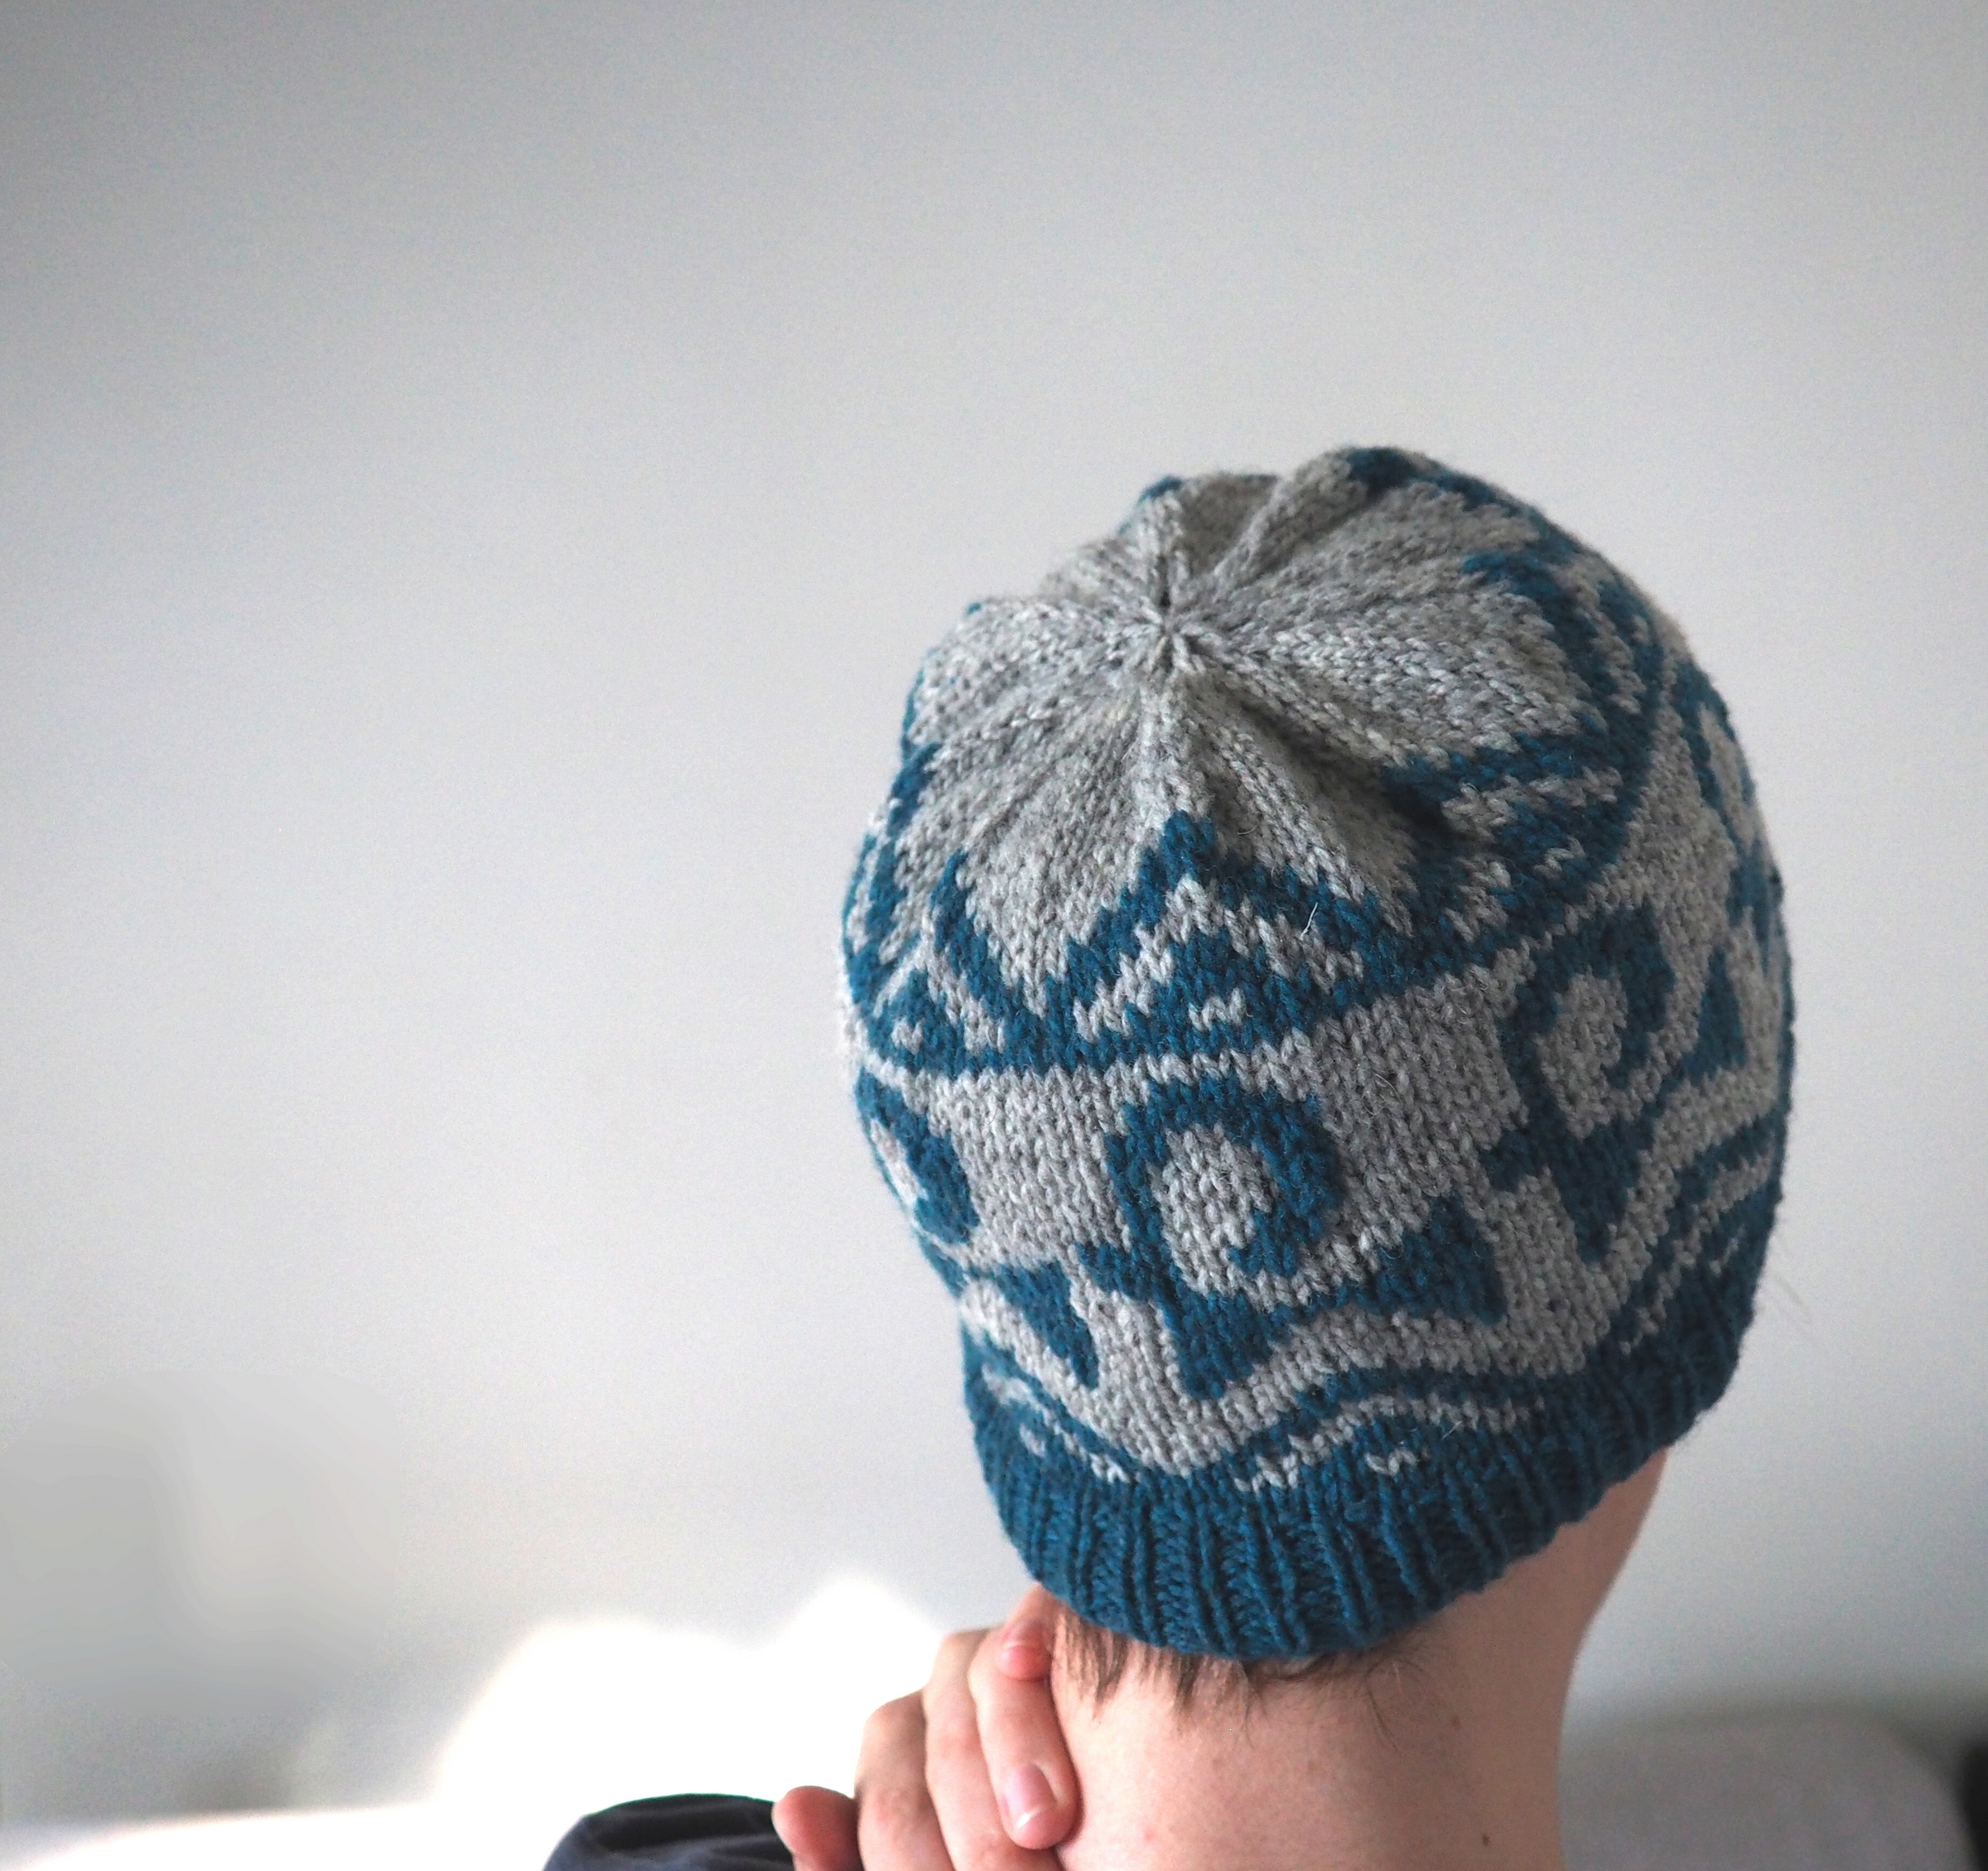 Ibex Hat - This hat is made of a two-color stranded pattern inspired by an ibex pattern found on antique oriental vases. With its simple, comfortable shape, it's the perfect hat to wear everyday and go out in nature with.